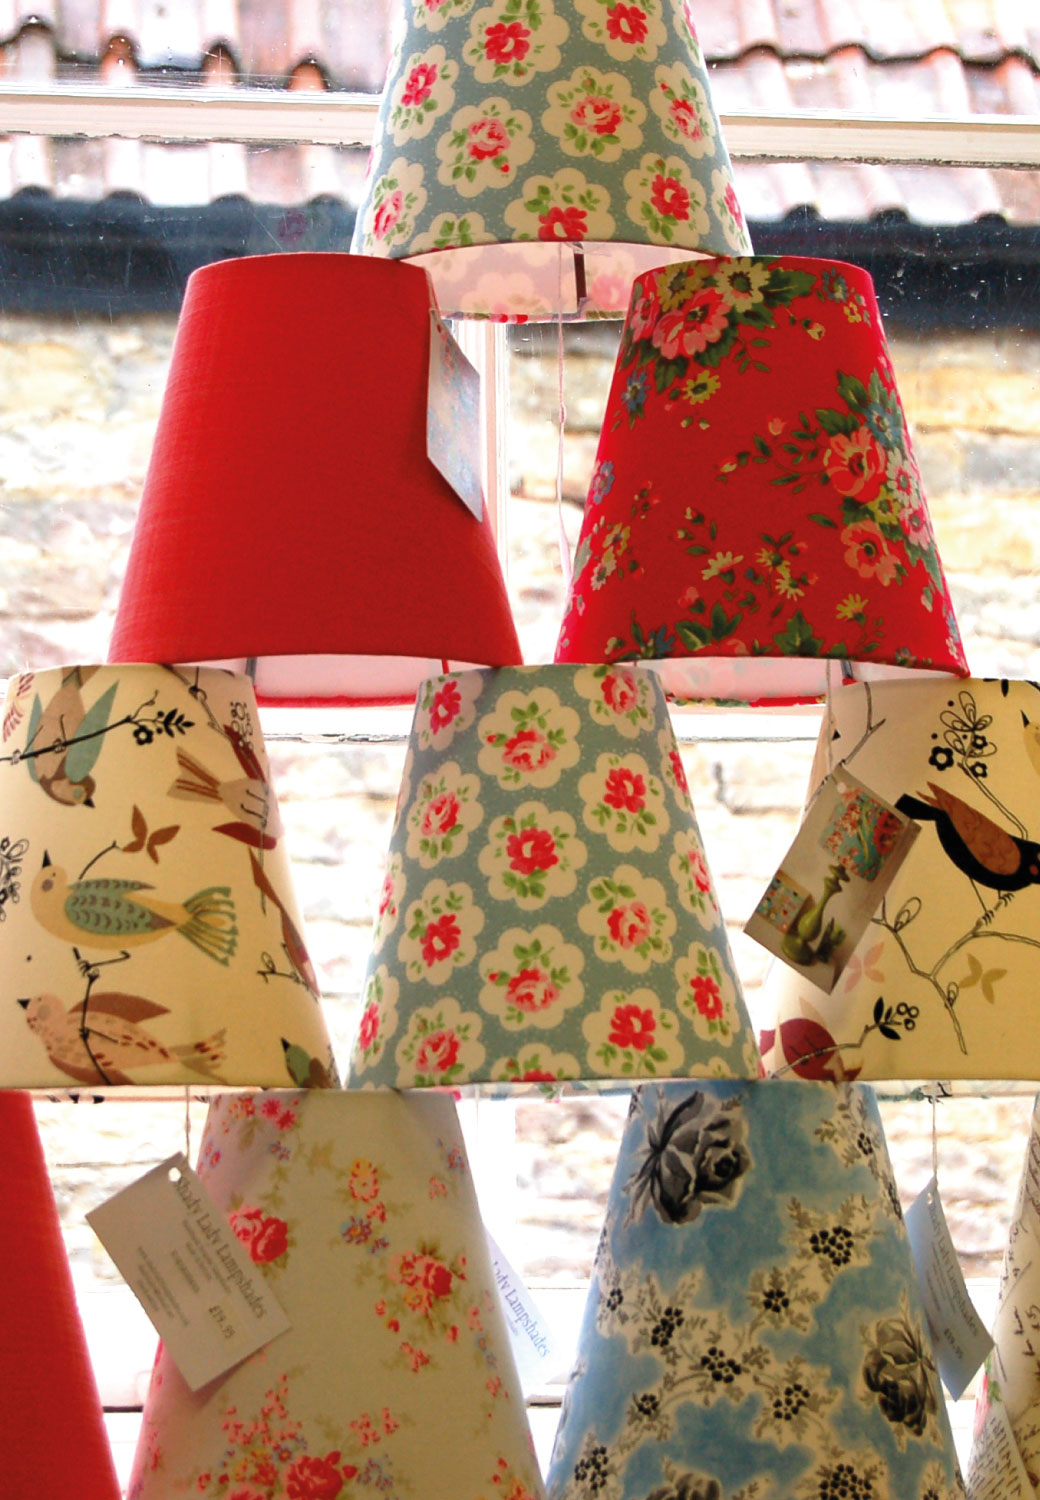 Bespoke lampshades | UK | Custom Made Bespoke | Retro Lampshades ...